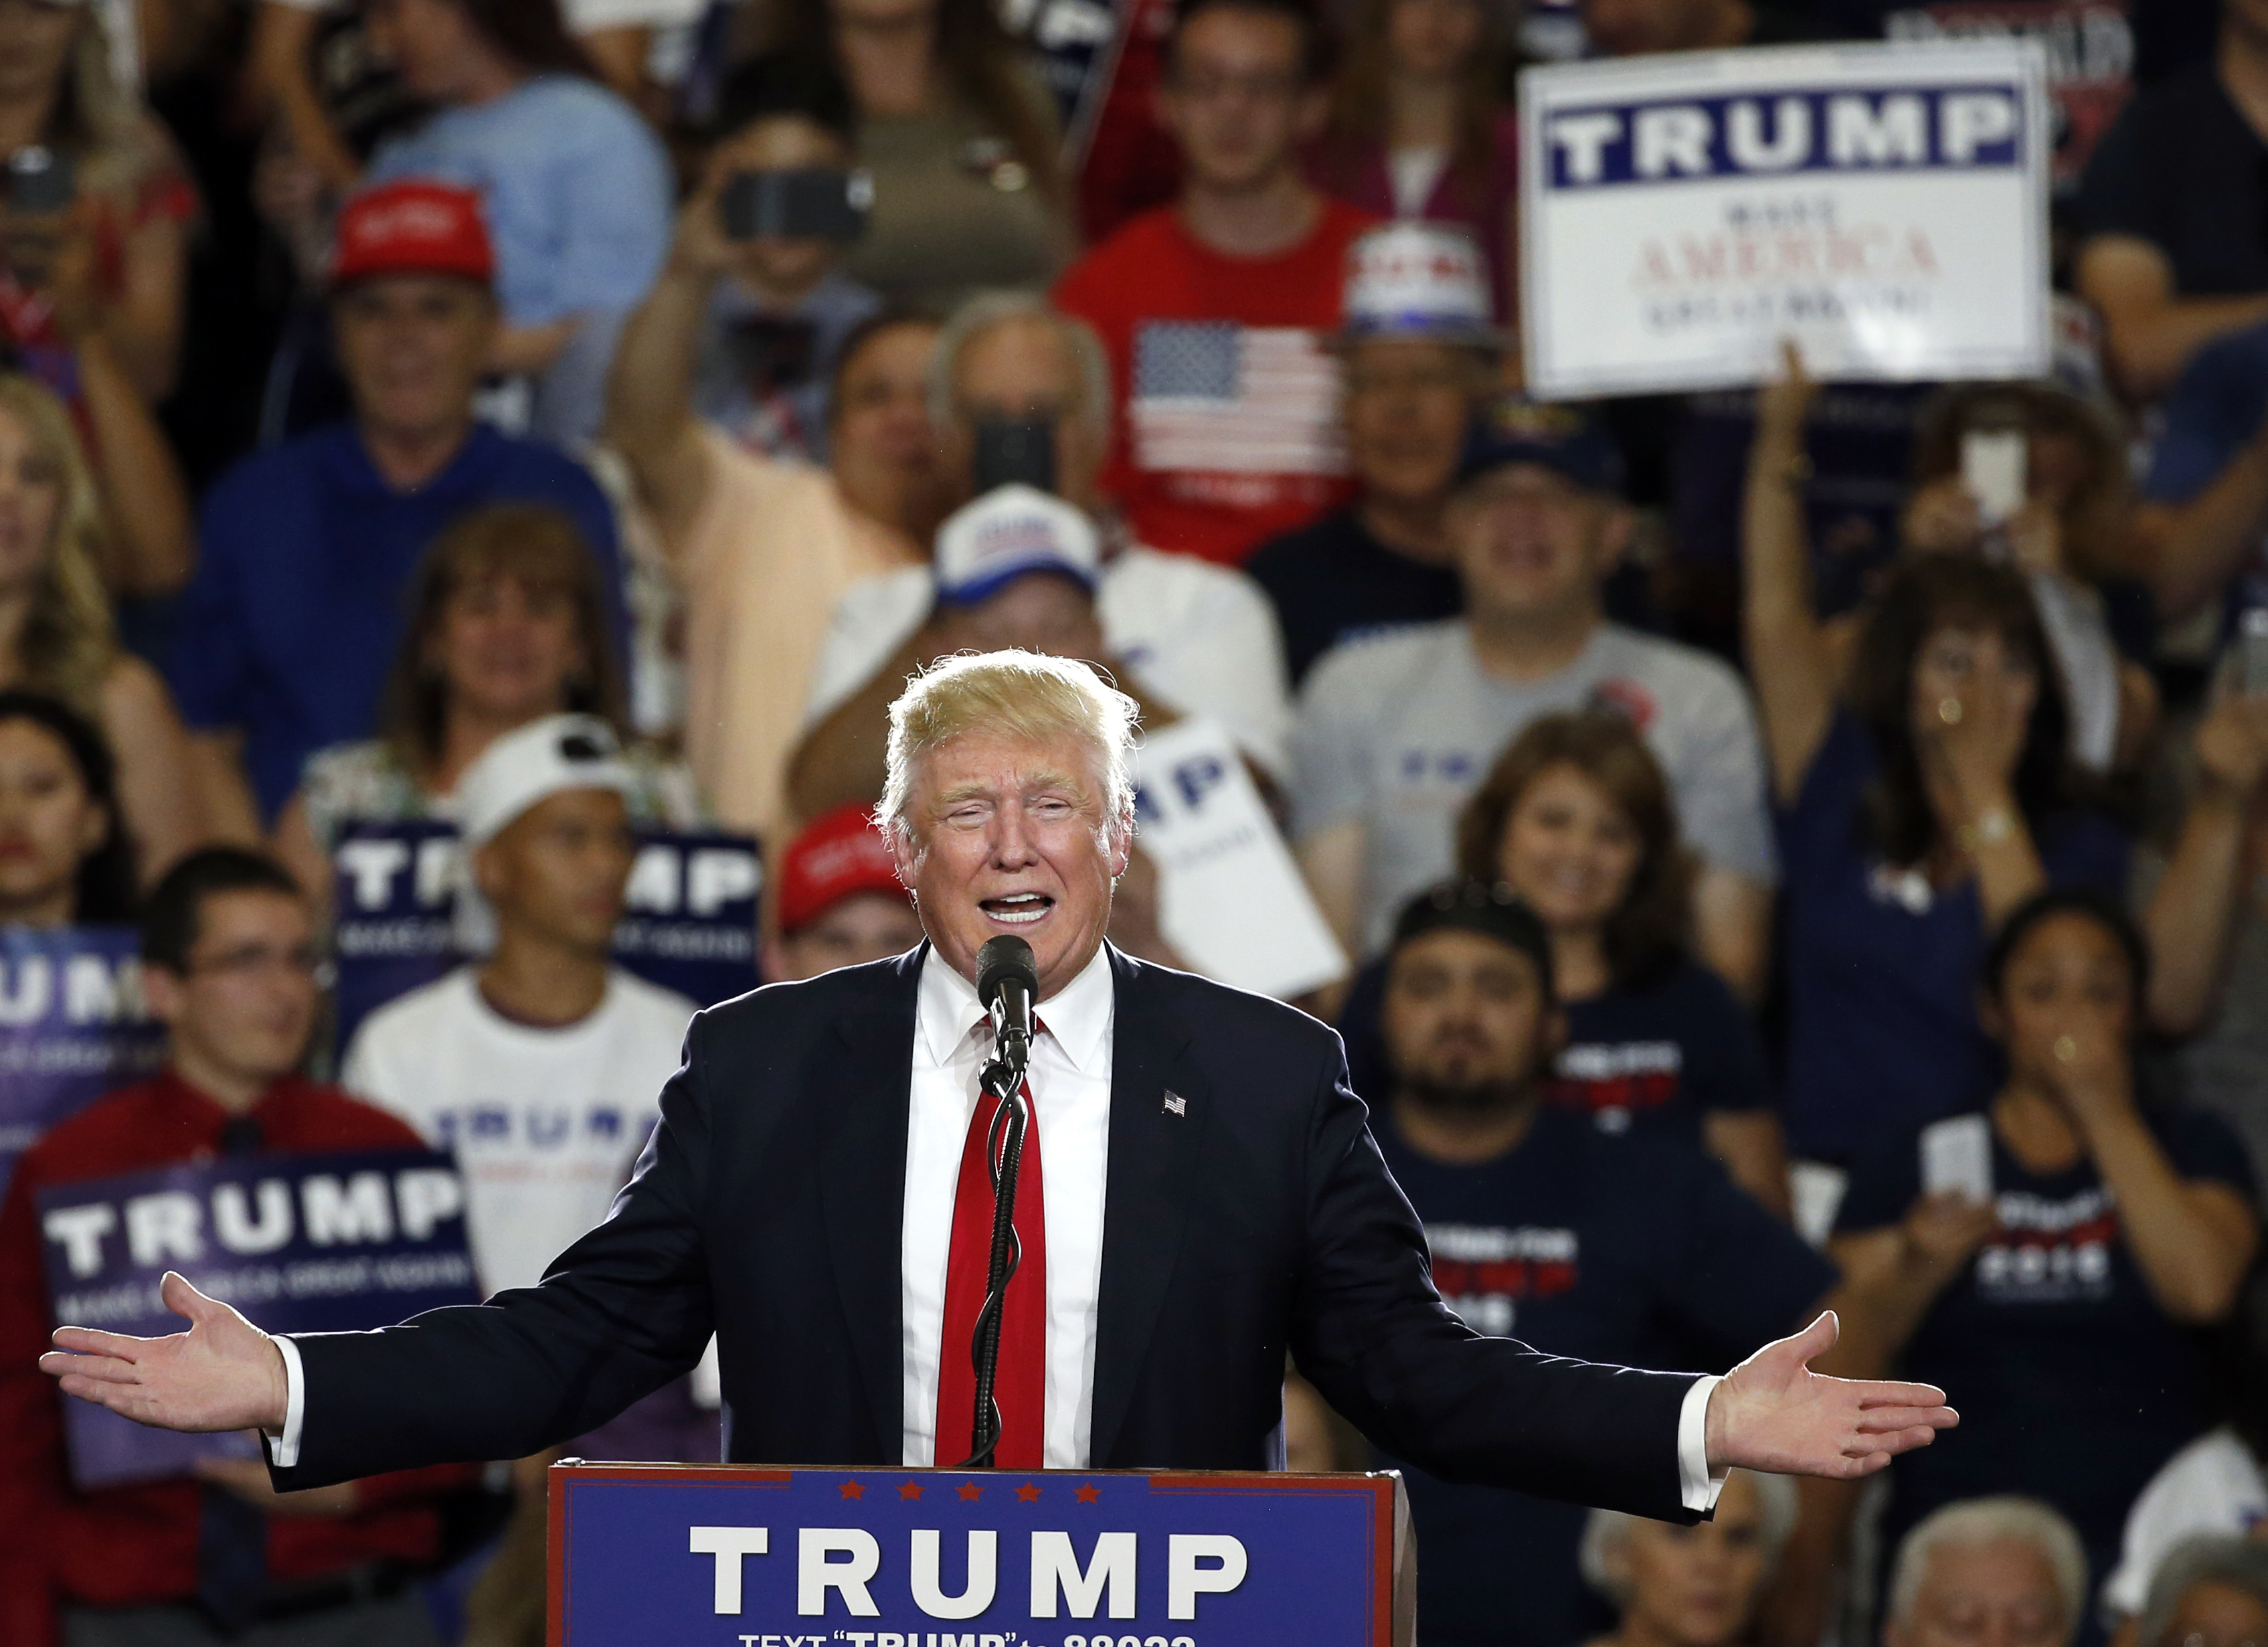 Trumps rally in New Mexico is a bid for an upset next year